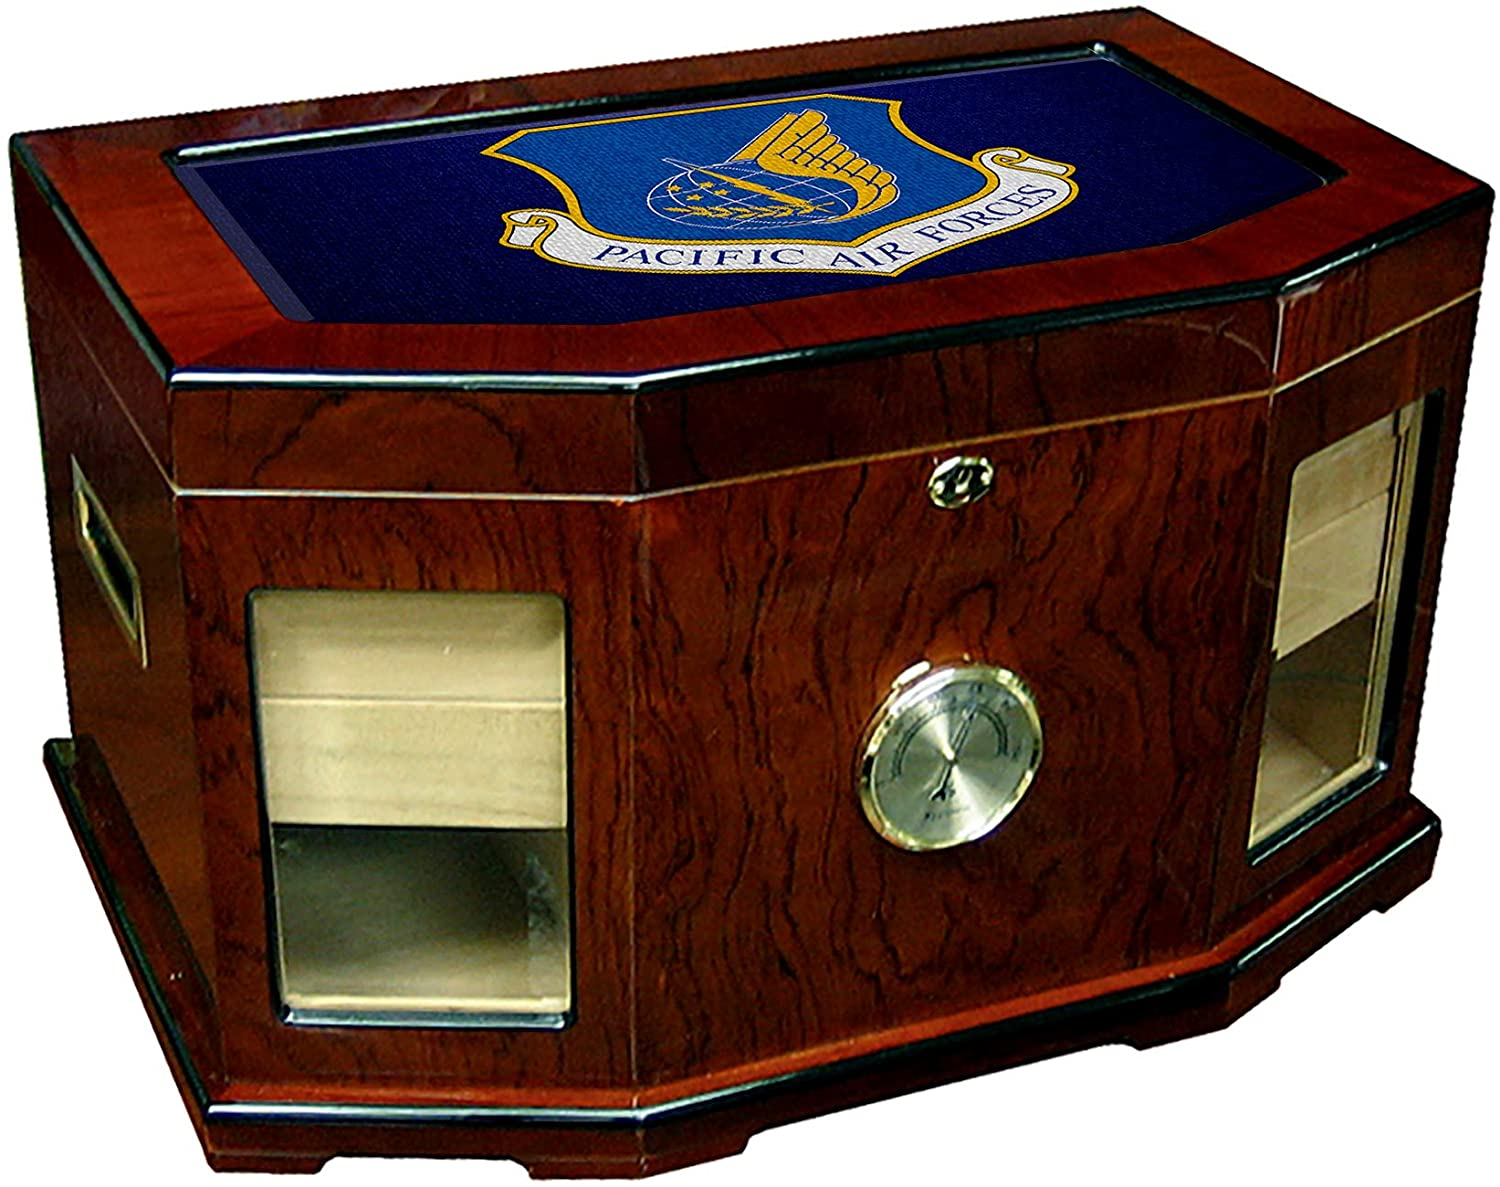 Large Premium Desktop Humidor - Glass Top -US Pacific Air Forces (PACAF)